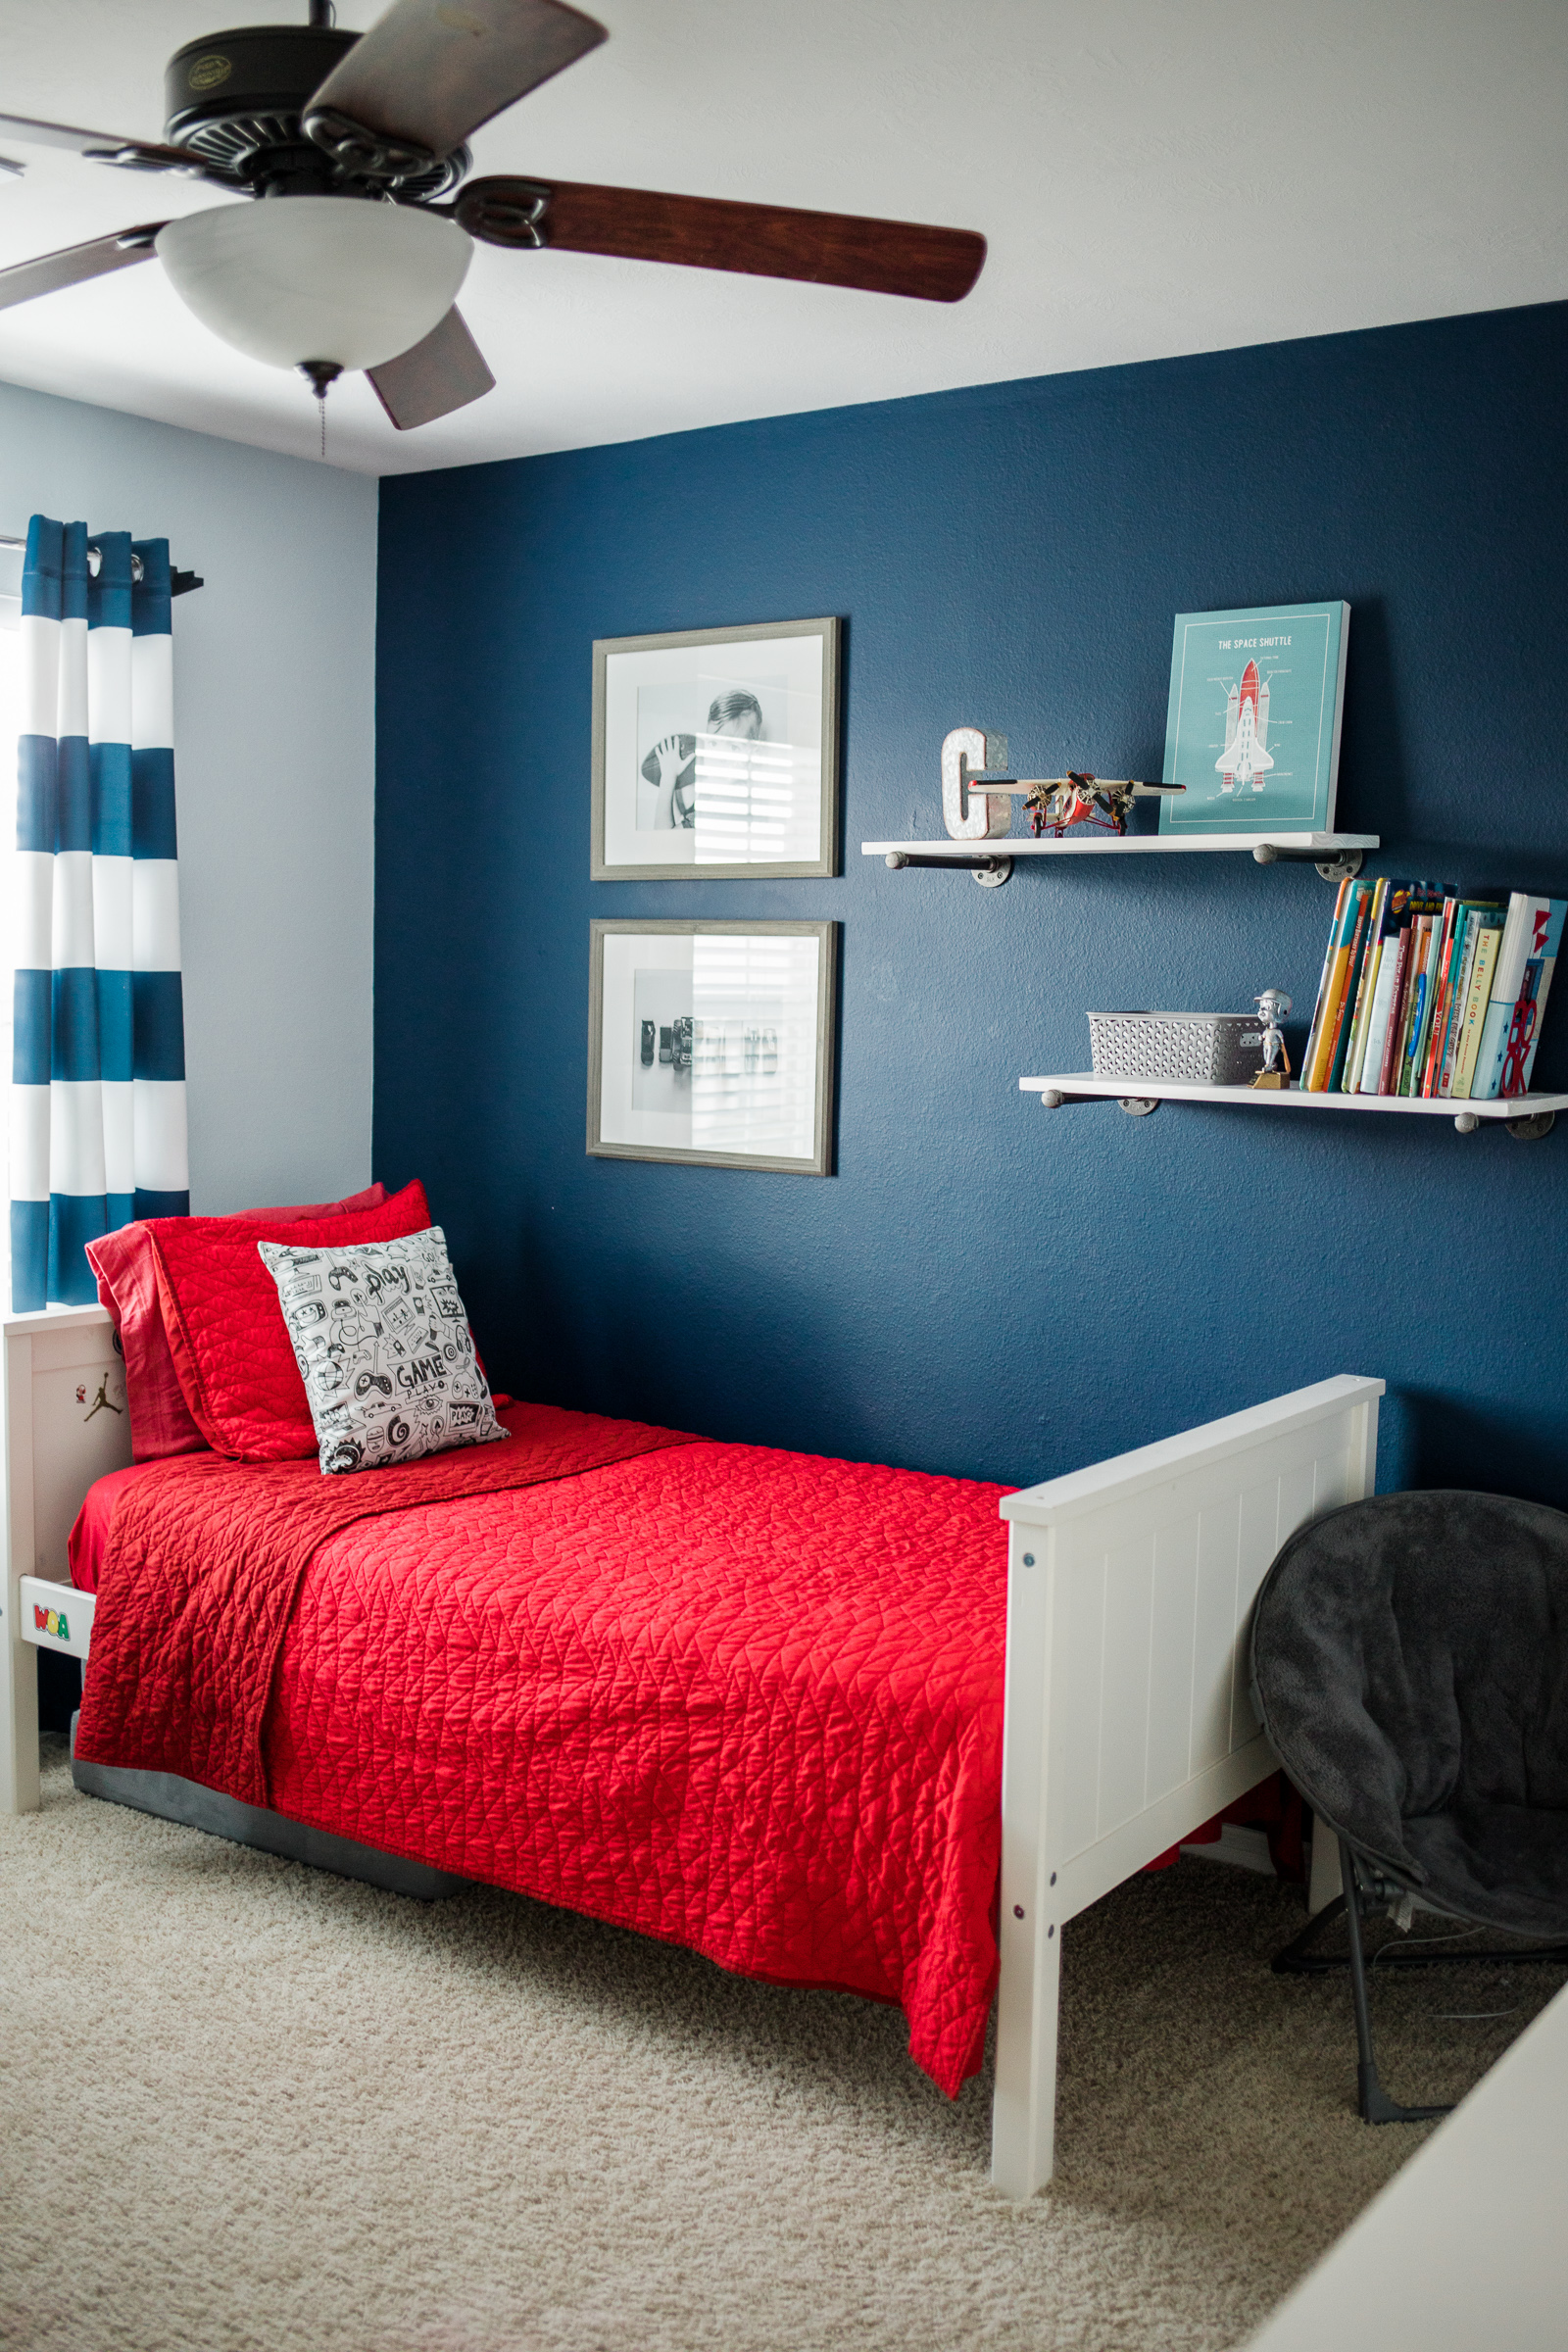 Houston lifestyle blogger Elly Brown shares her shared boys bedroom decor